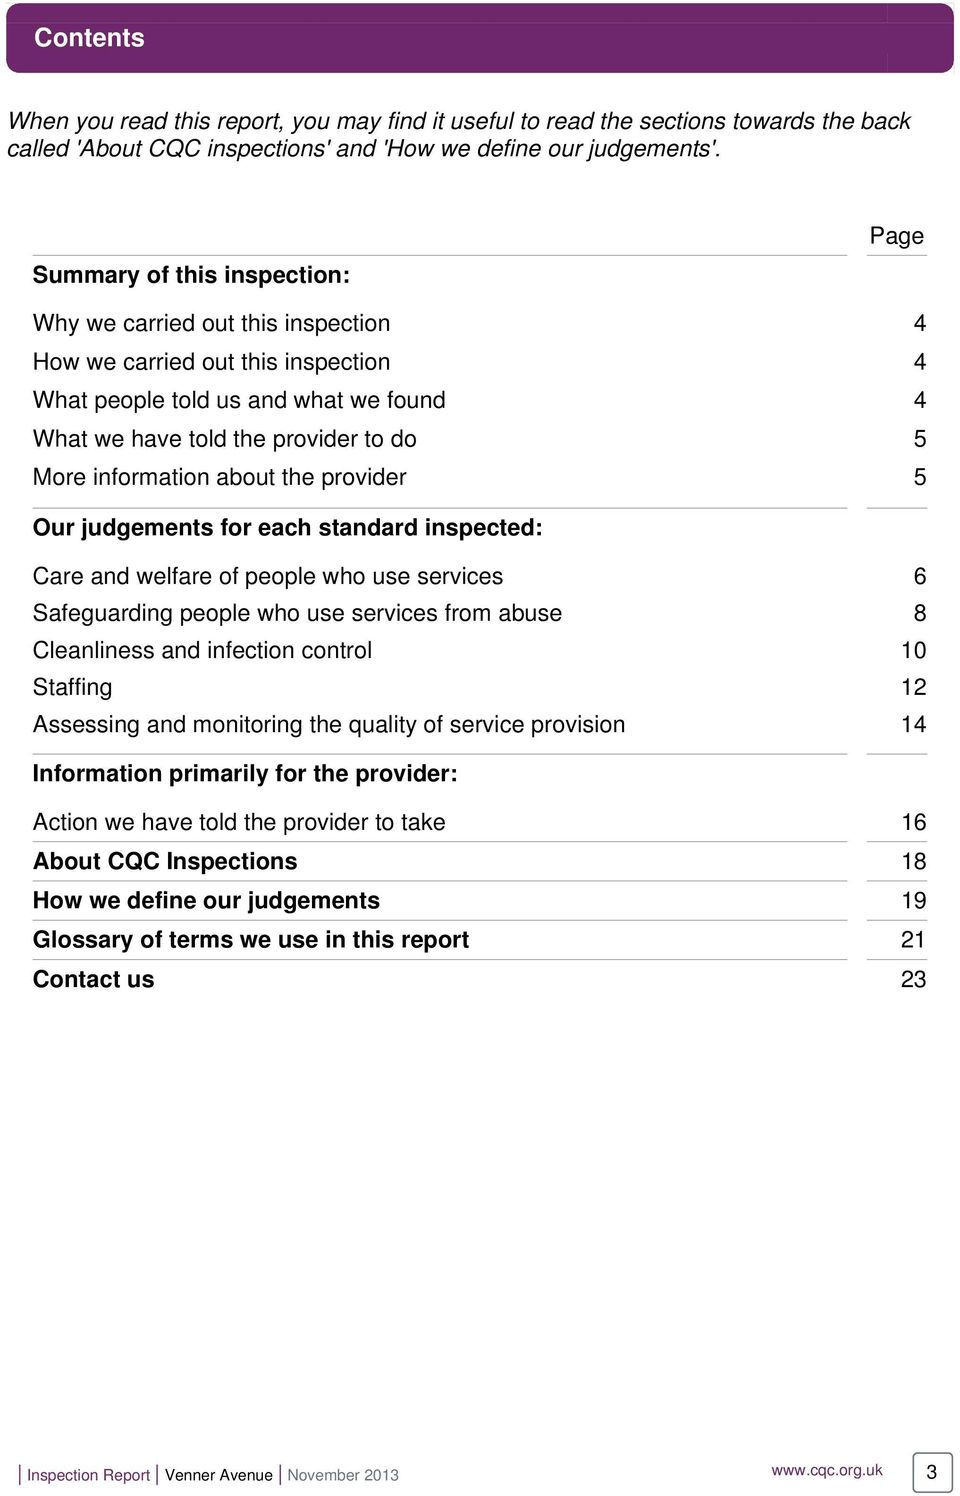 information about the provider 5 Our judgements for each standard inspected: Care and welfare of people who use services 6 Safeguarding people who use services from abuse 8 Cleanliness and infection